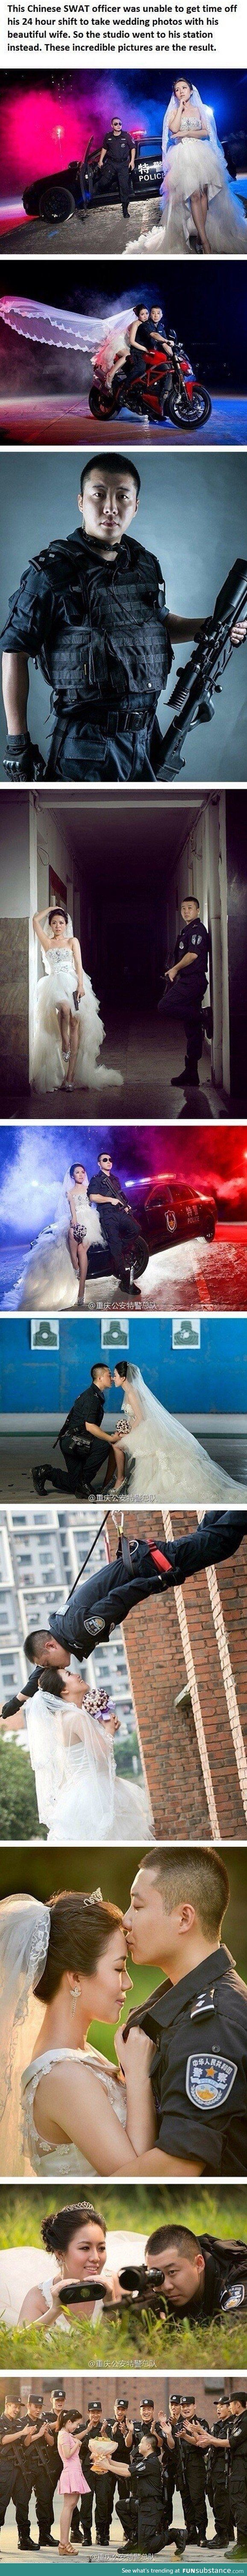 A police marriage photo shoot...Finally! A wedding shoot I could get into!